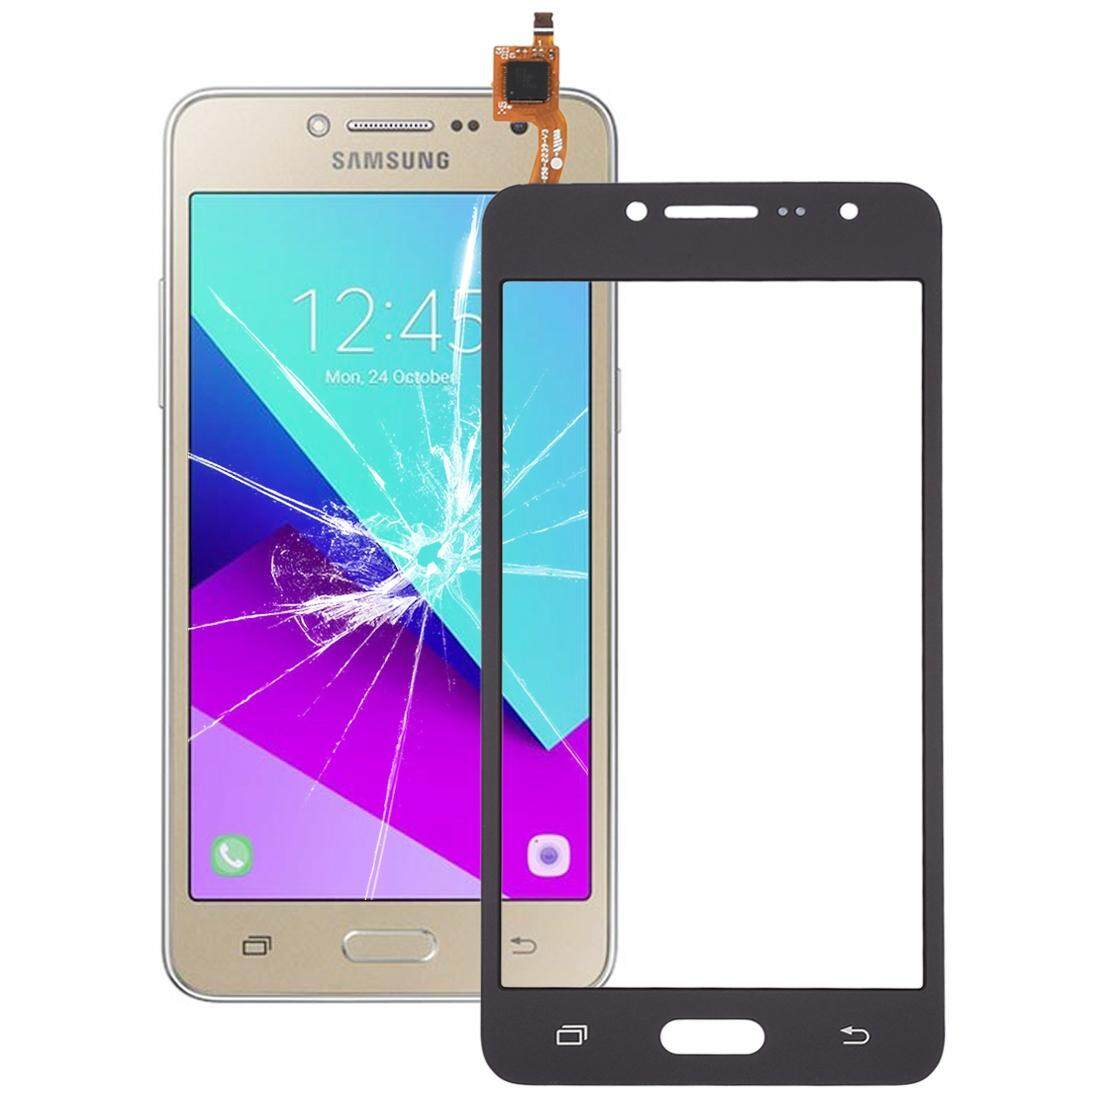 Features Samsung Galaxy J2 Prime G532 Slim Touch Armor Cushion Case 8gb Ipartsbuy For Screen Digitizer Assemblyblack